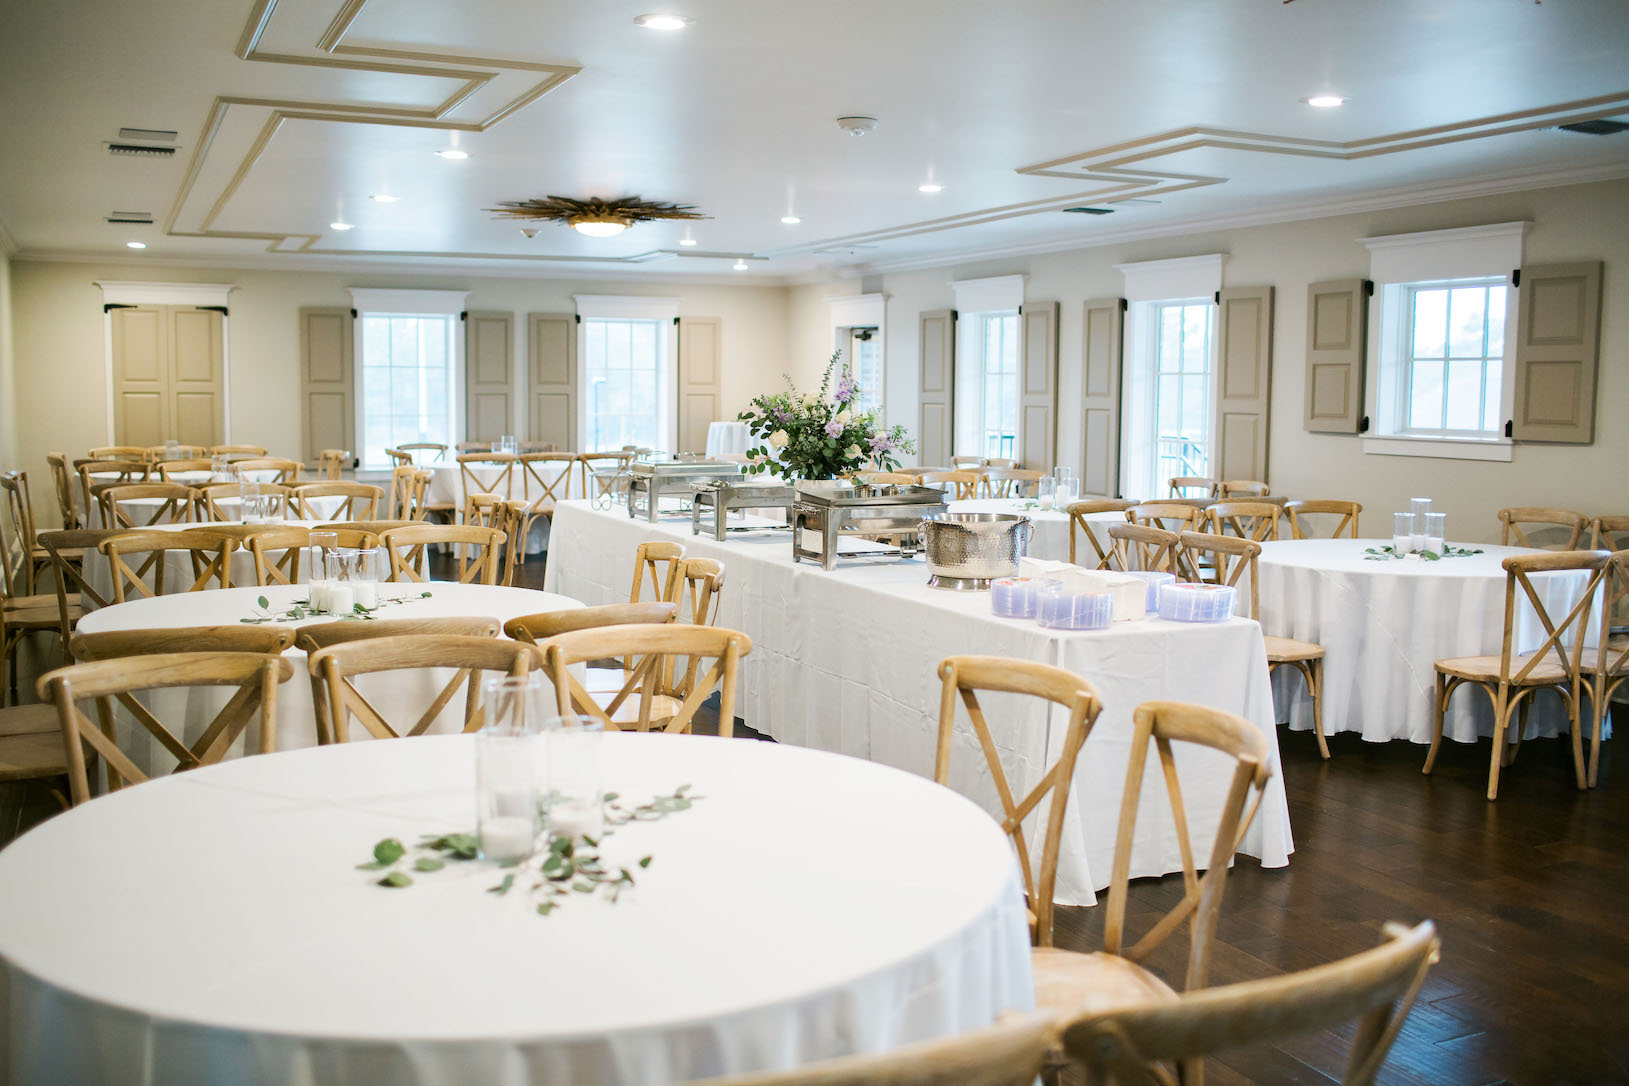 event center, wedding venue